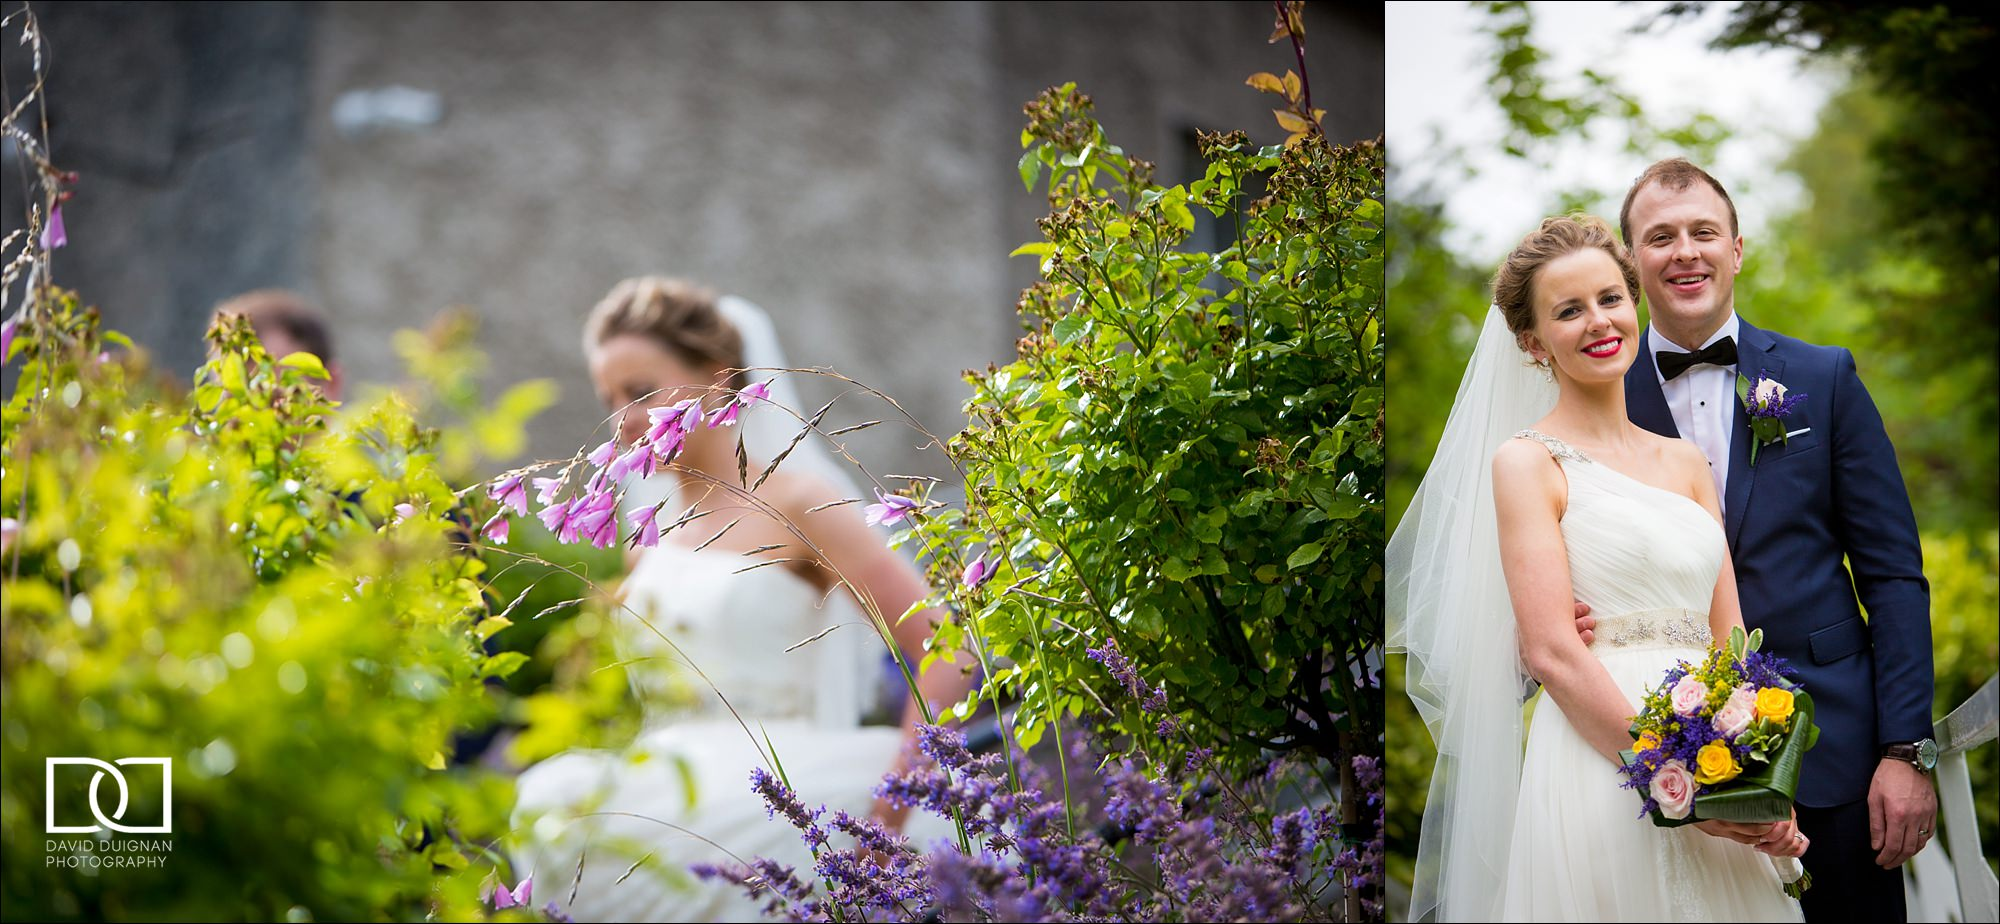 louth wedding photographer david duignan photography castle bellingham wedding Ireland 0034